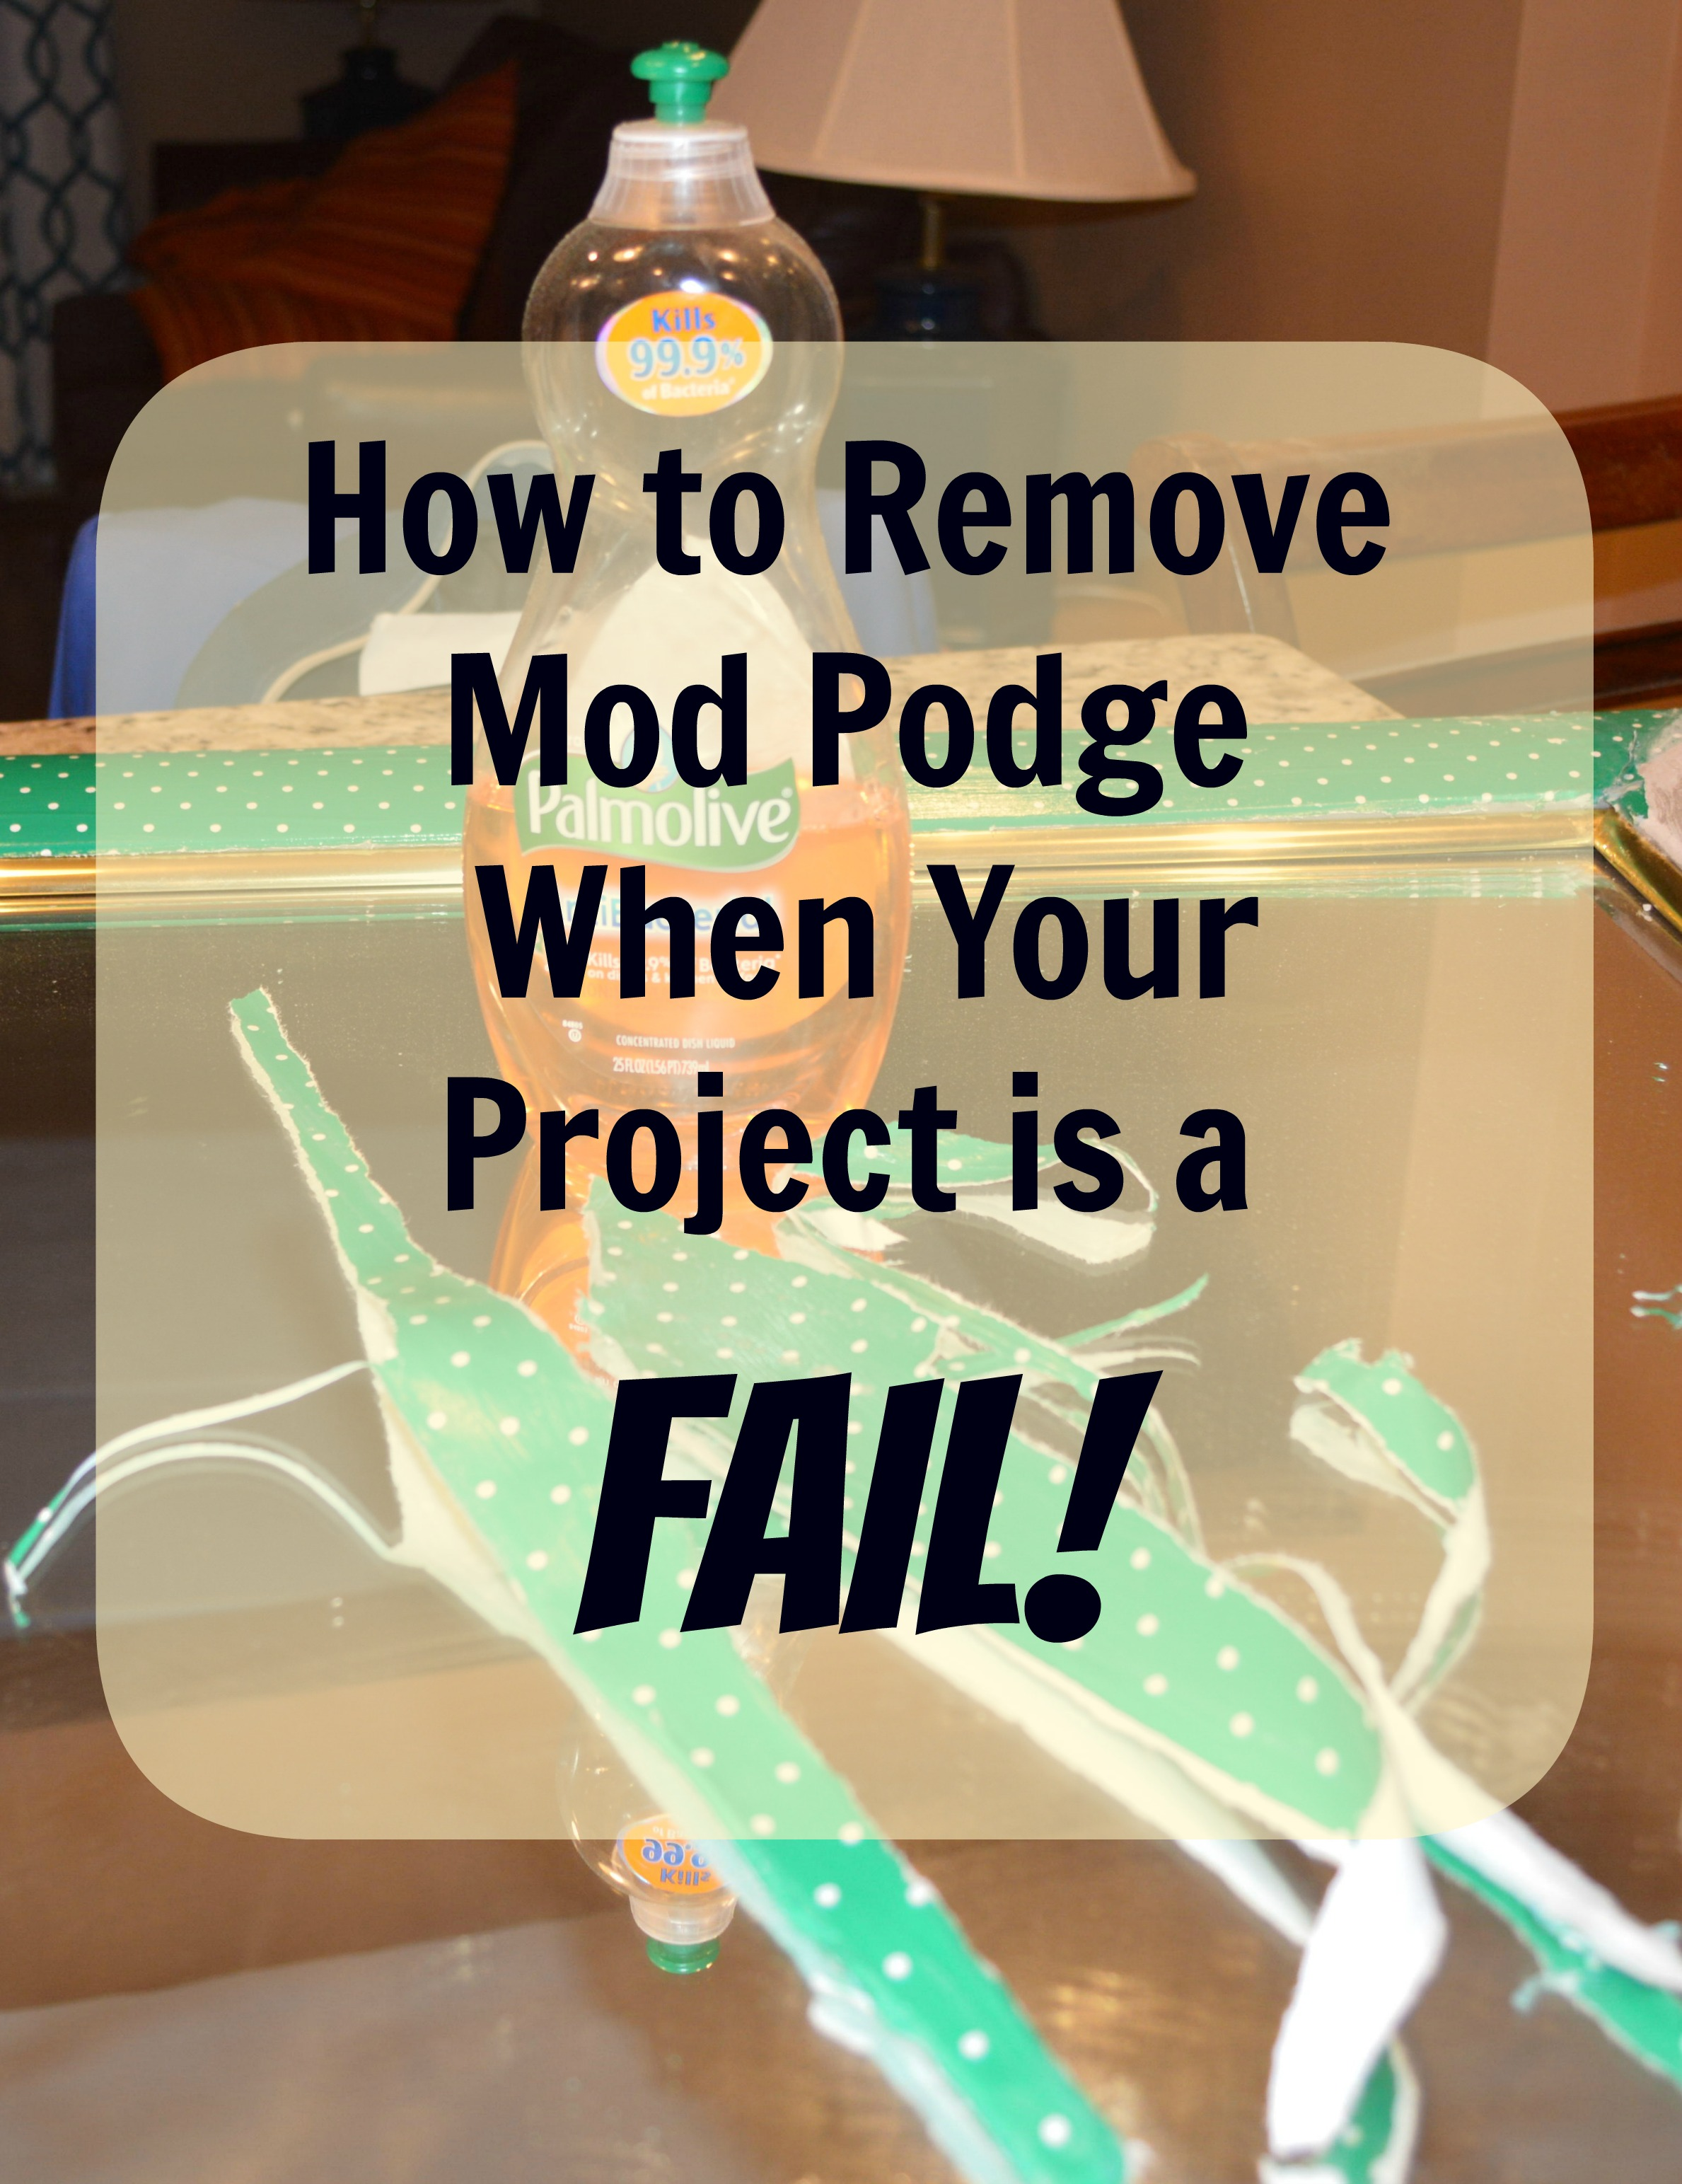 Mod Podge Kitchen Table How To Remove Mod Podge